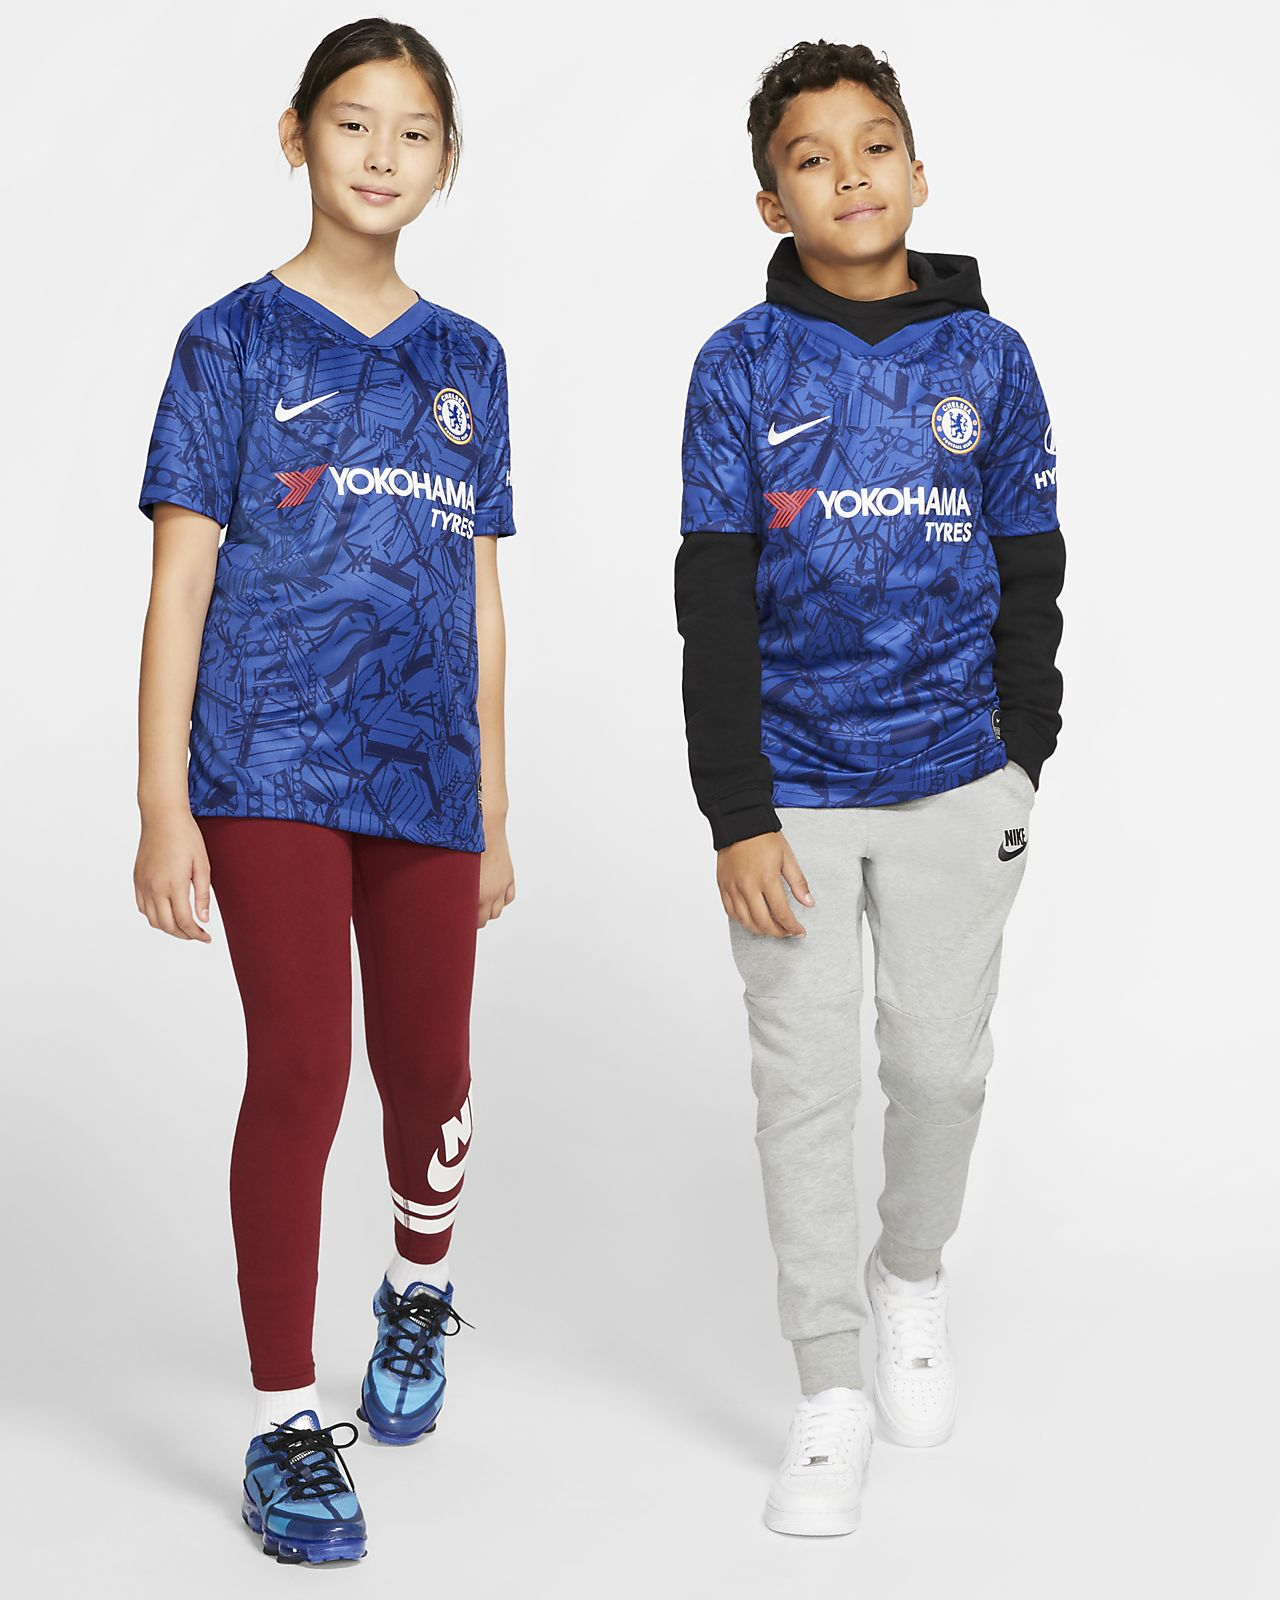 08add3bd6 cheap chelsea personalized new blue soccer club jersey 8c410 a0870  big  kids soccer jersey. chelsea fc 2019 20 stadium home